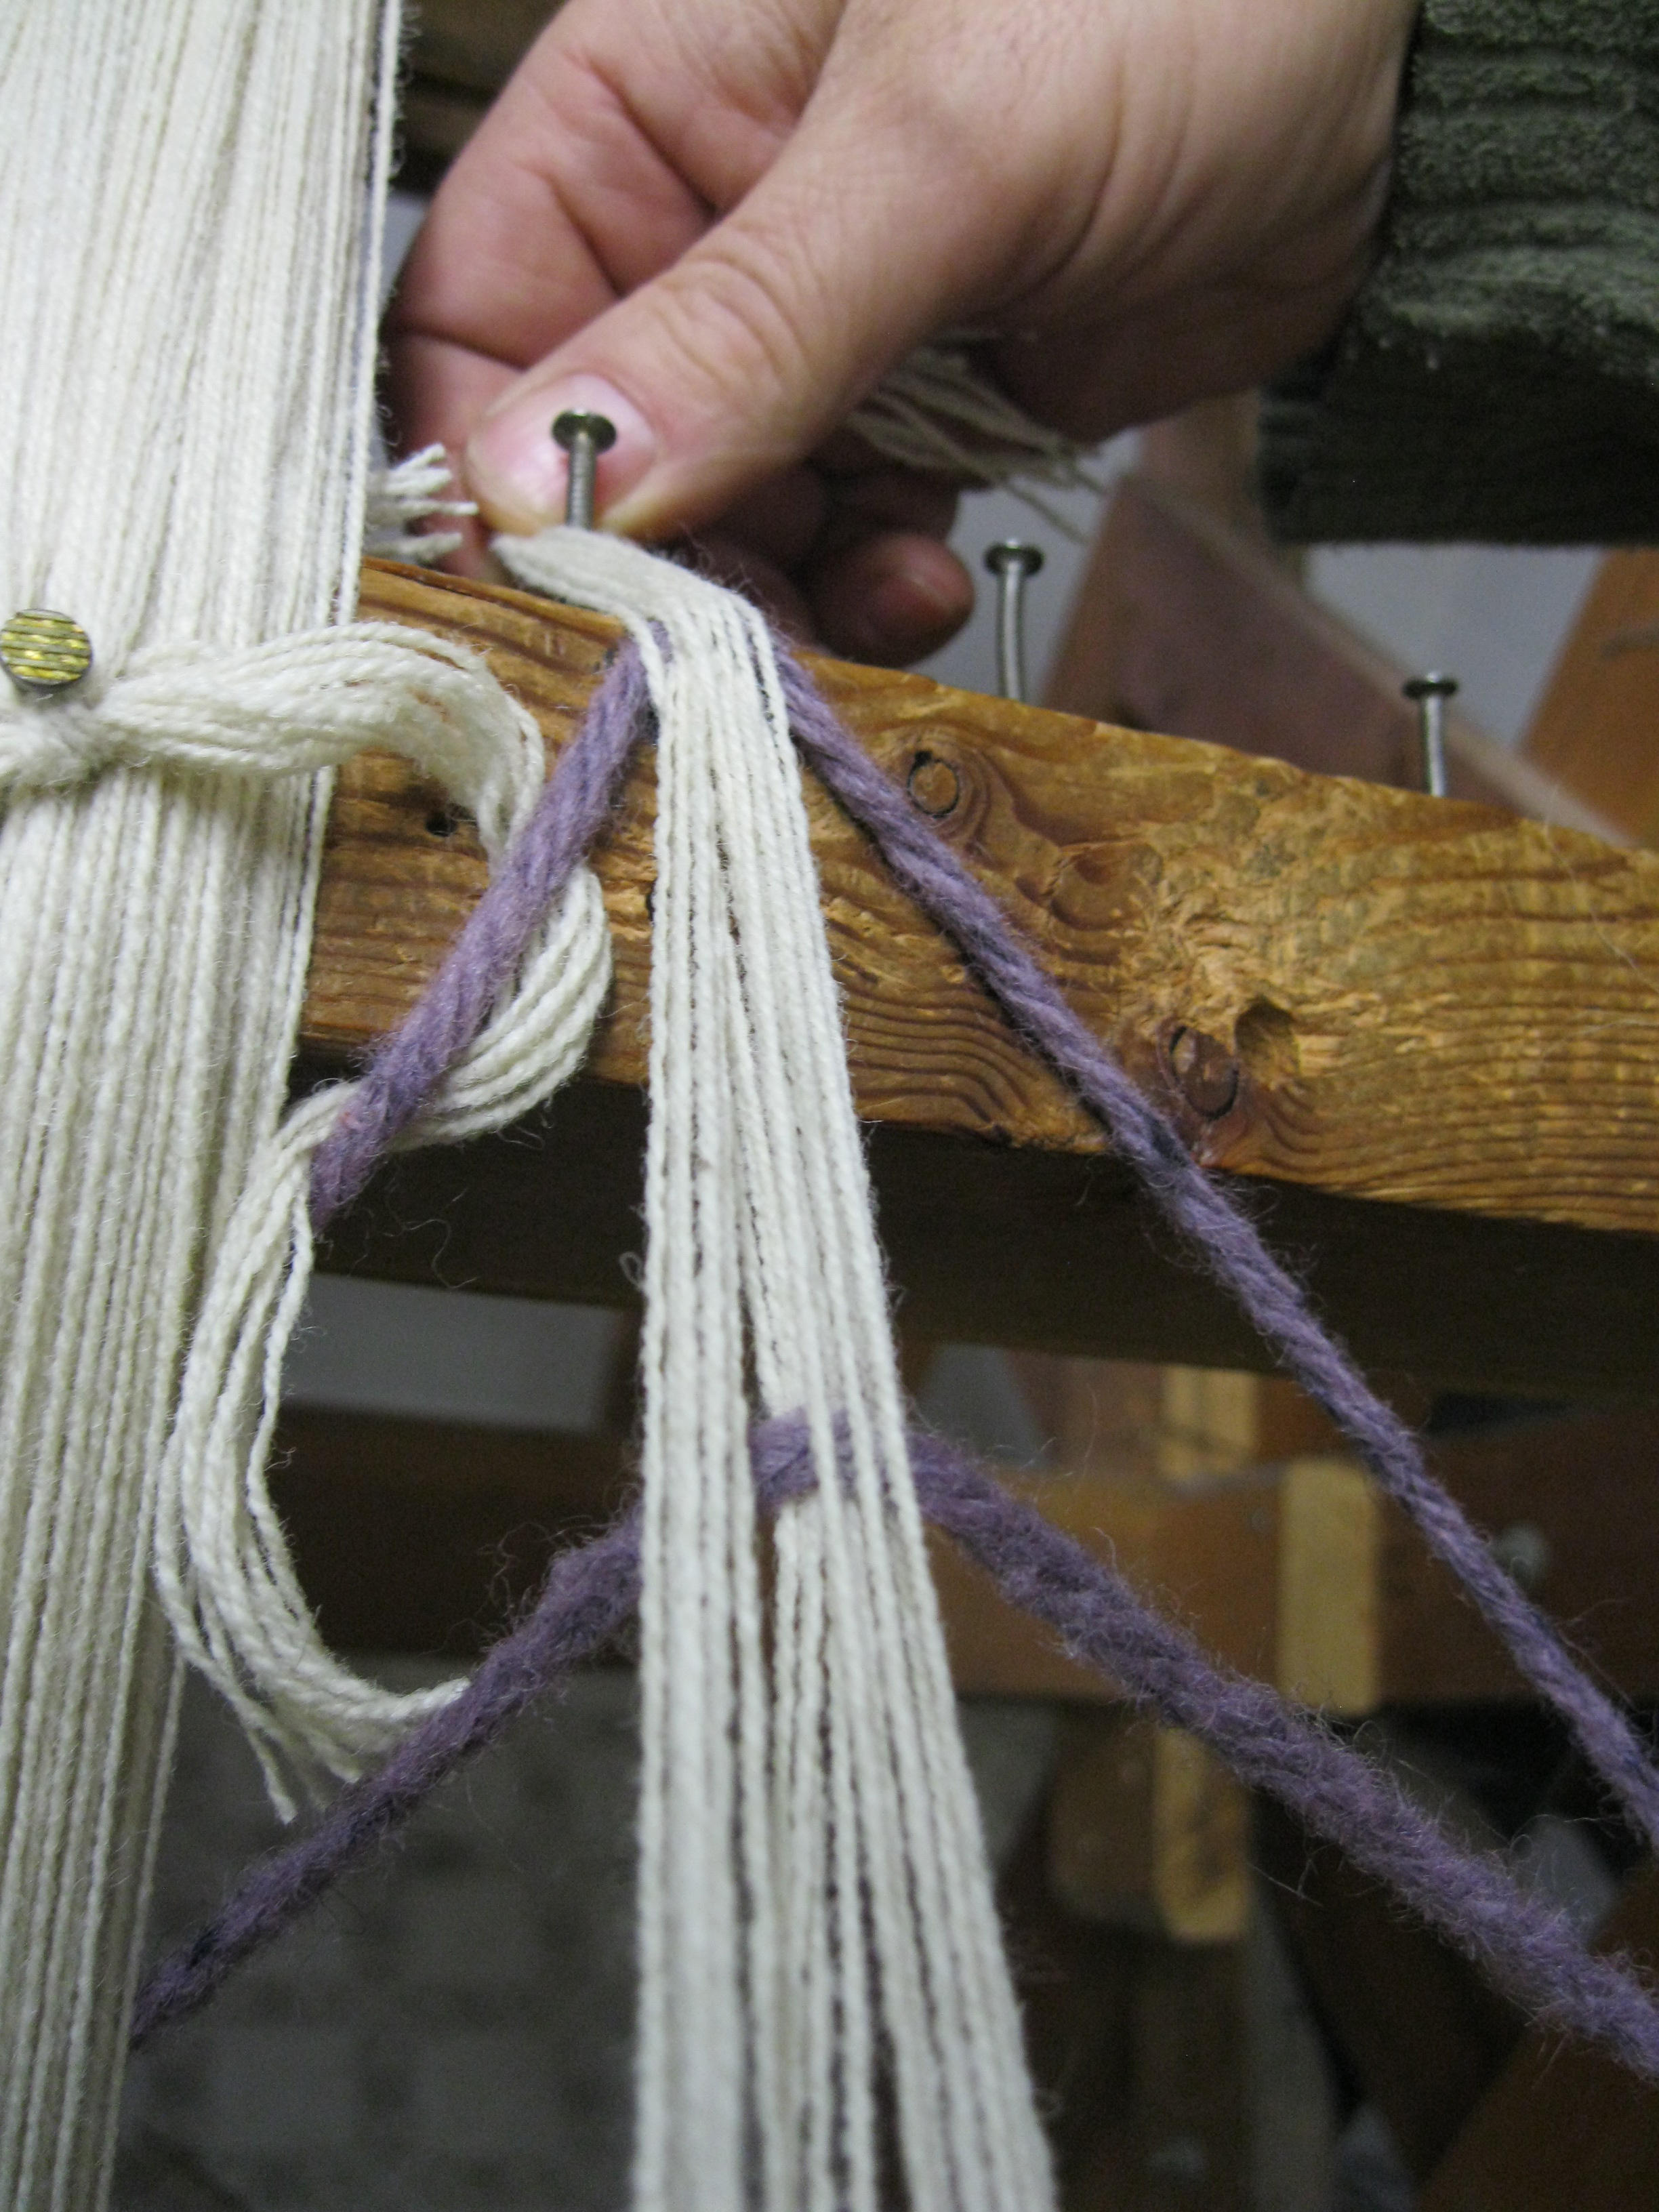 placing-the-beginning-of-section-on-nail-in-warping-mill